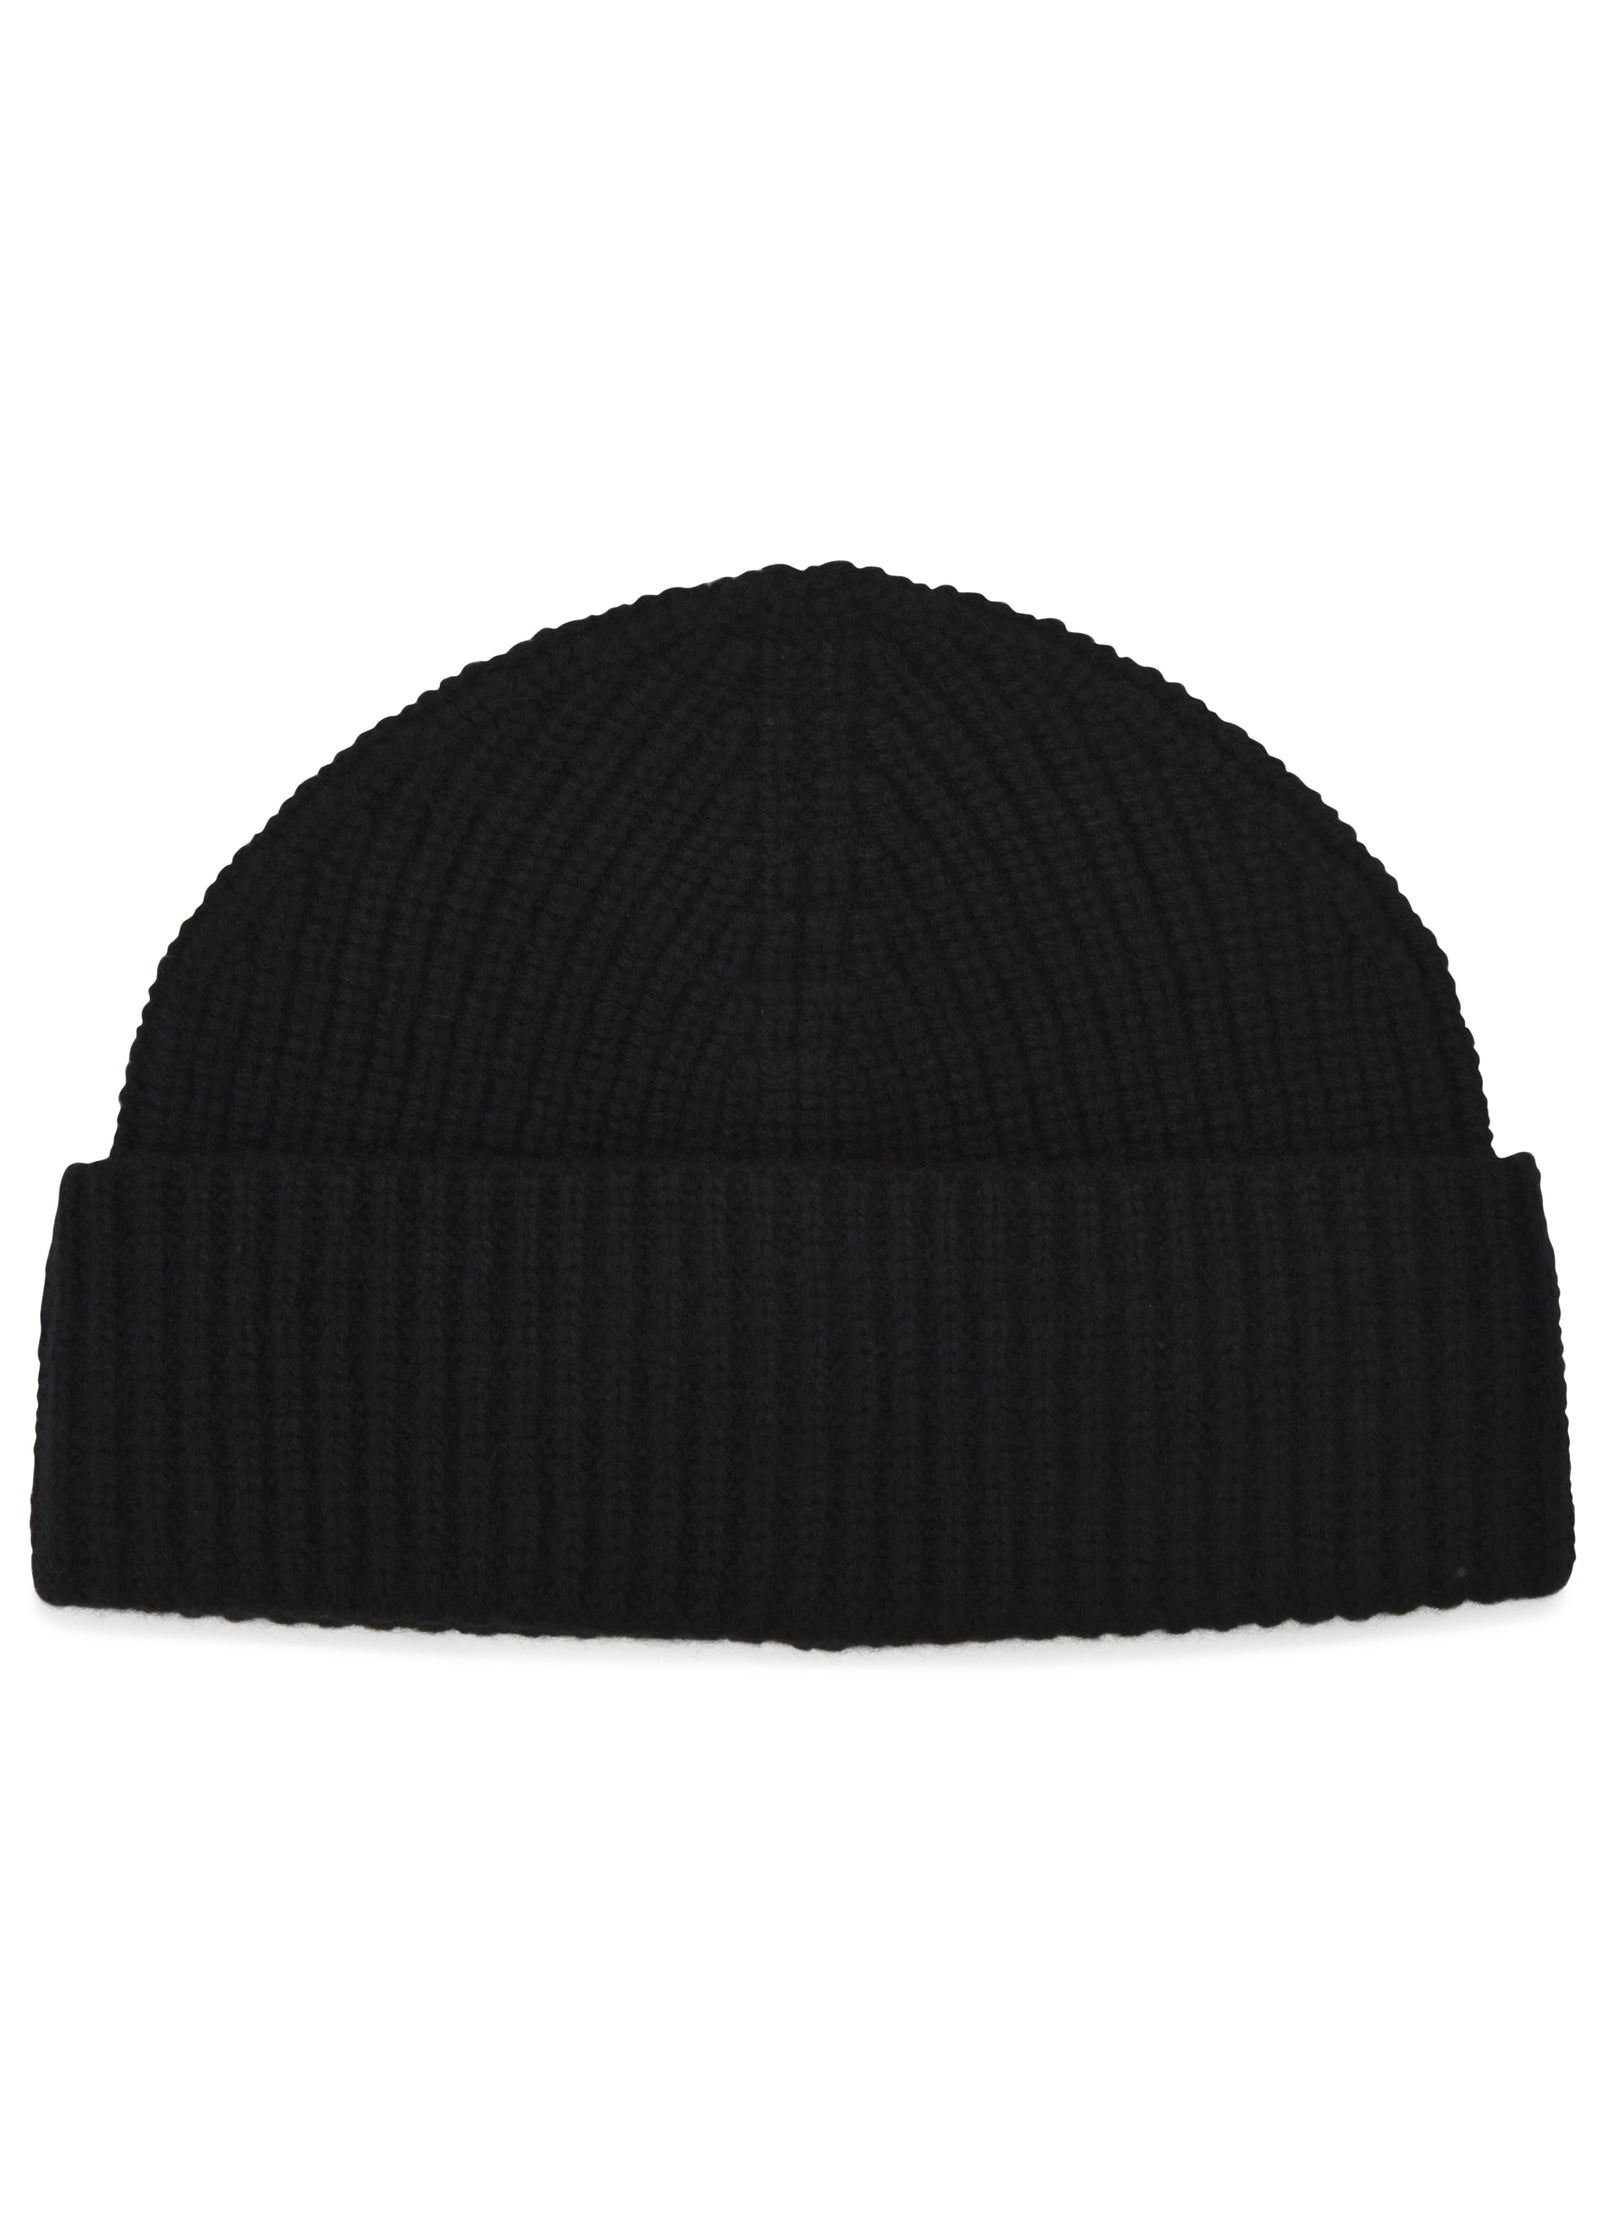 Cashmere Cap in Black